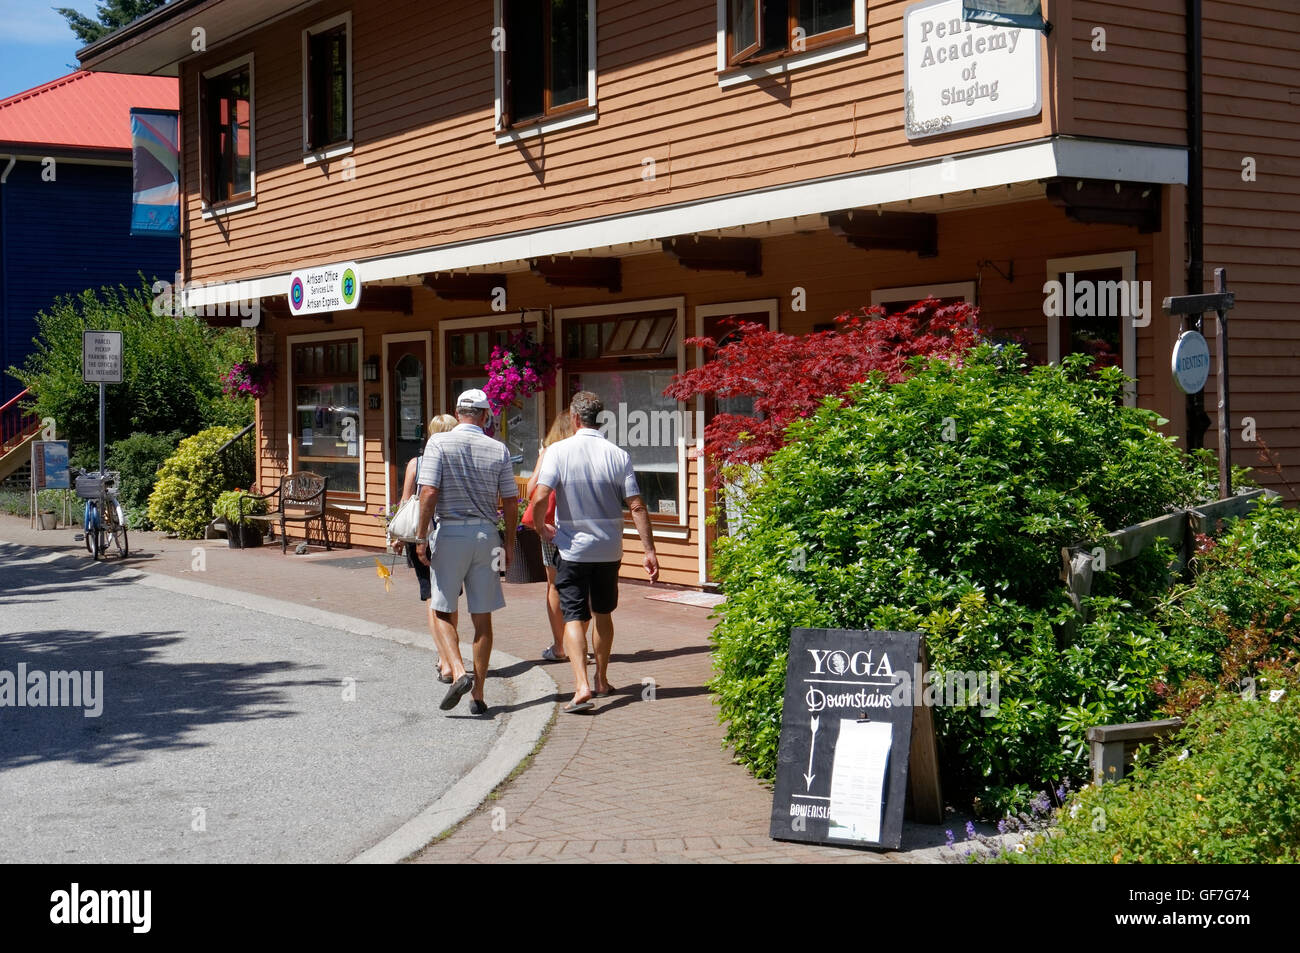 Tourists walking by a colorful building at Artisan Square on Bowen island, British Columbia, Canada - Stock Image